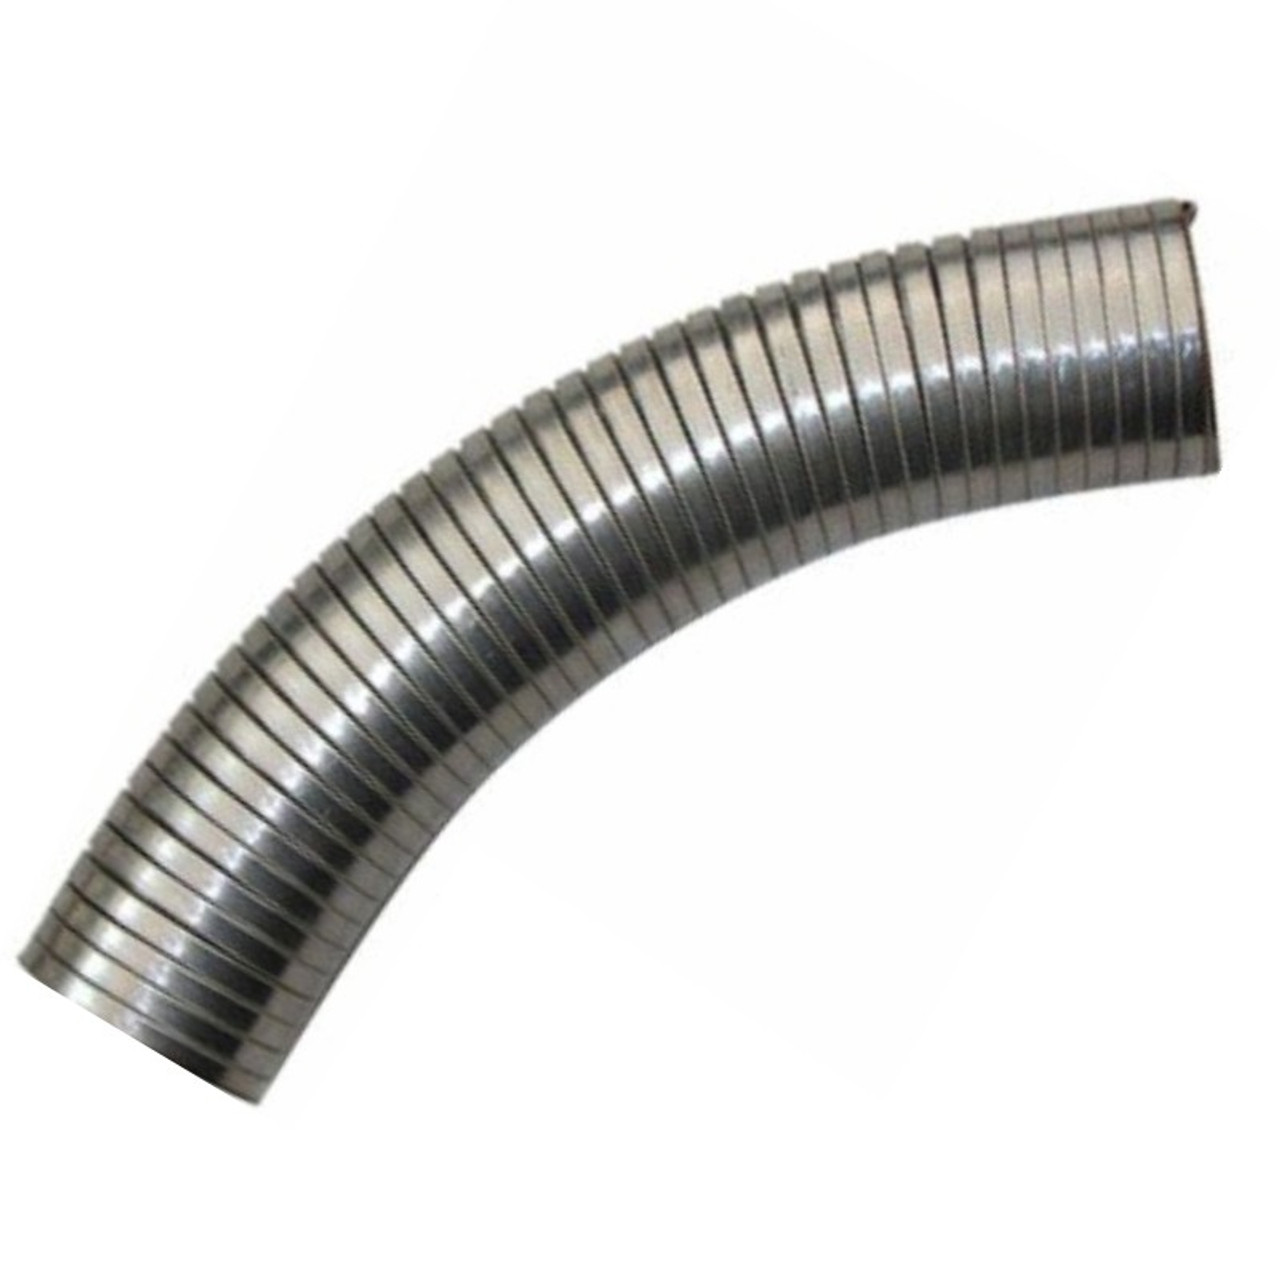 3 x 36 304 stainless steel flex exhaust hose sf 336